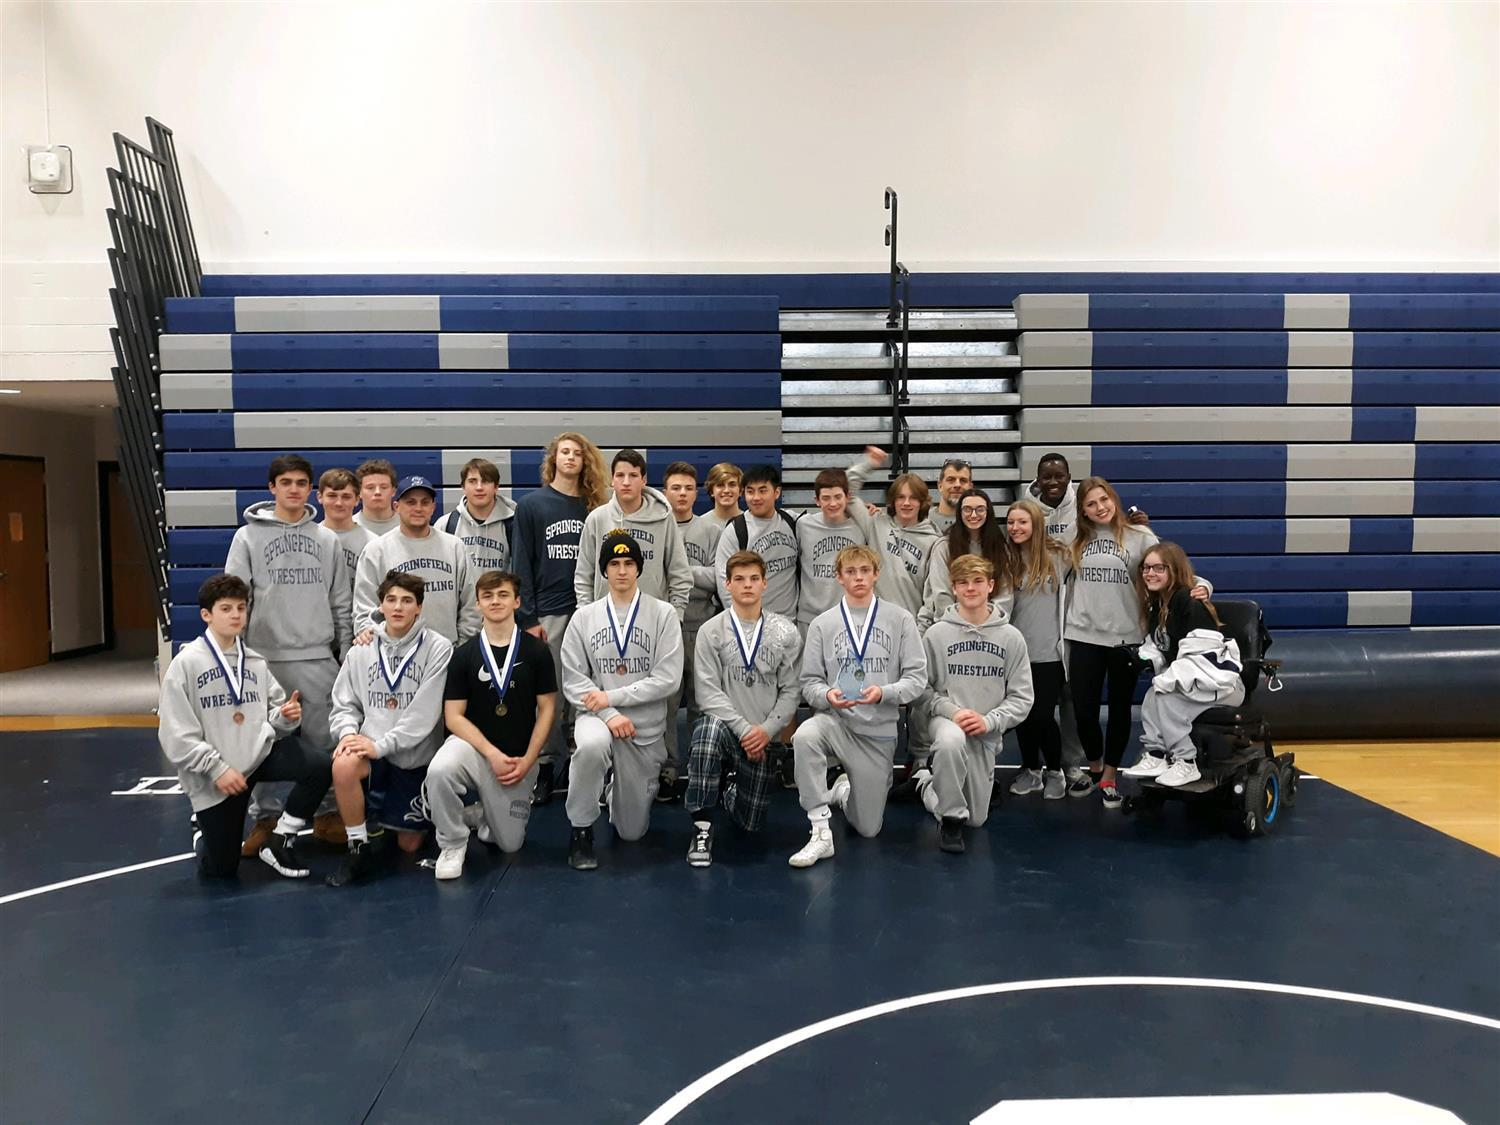 Wrestling team on the mat